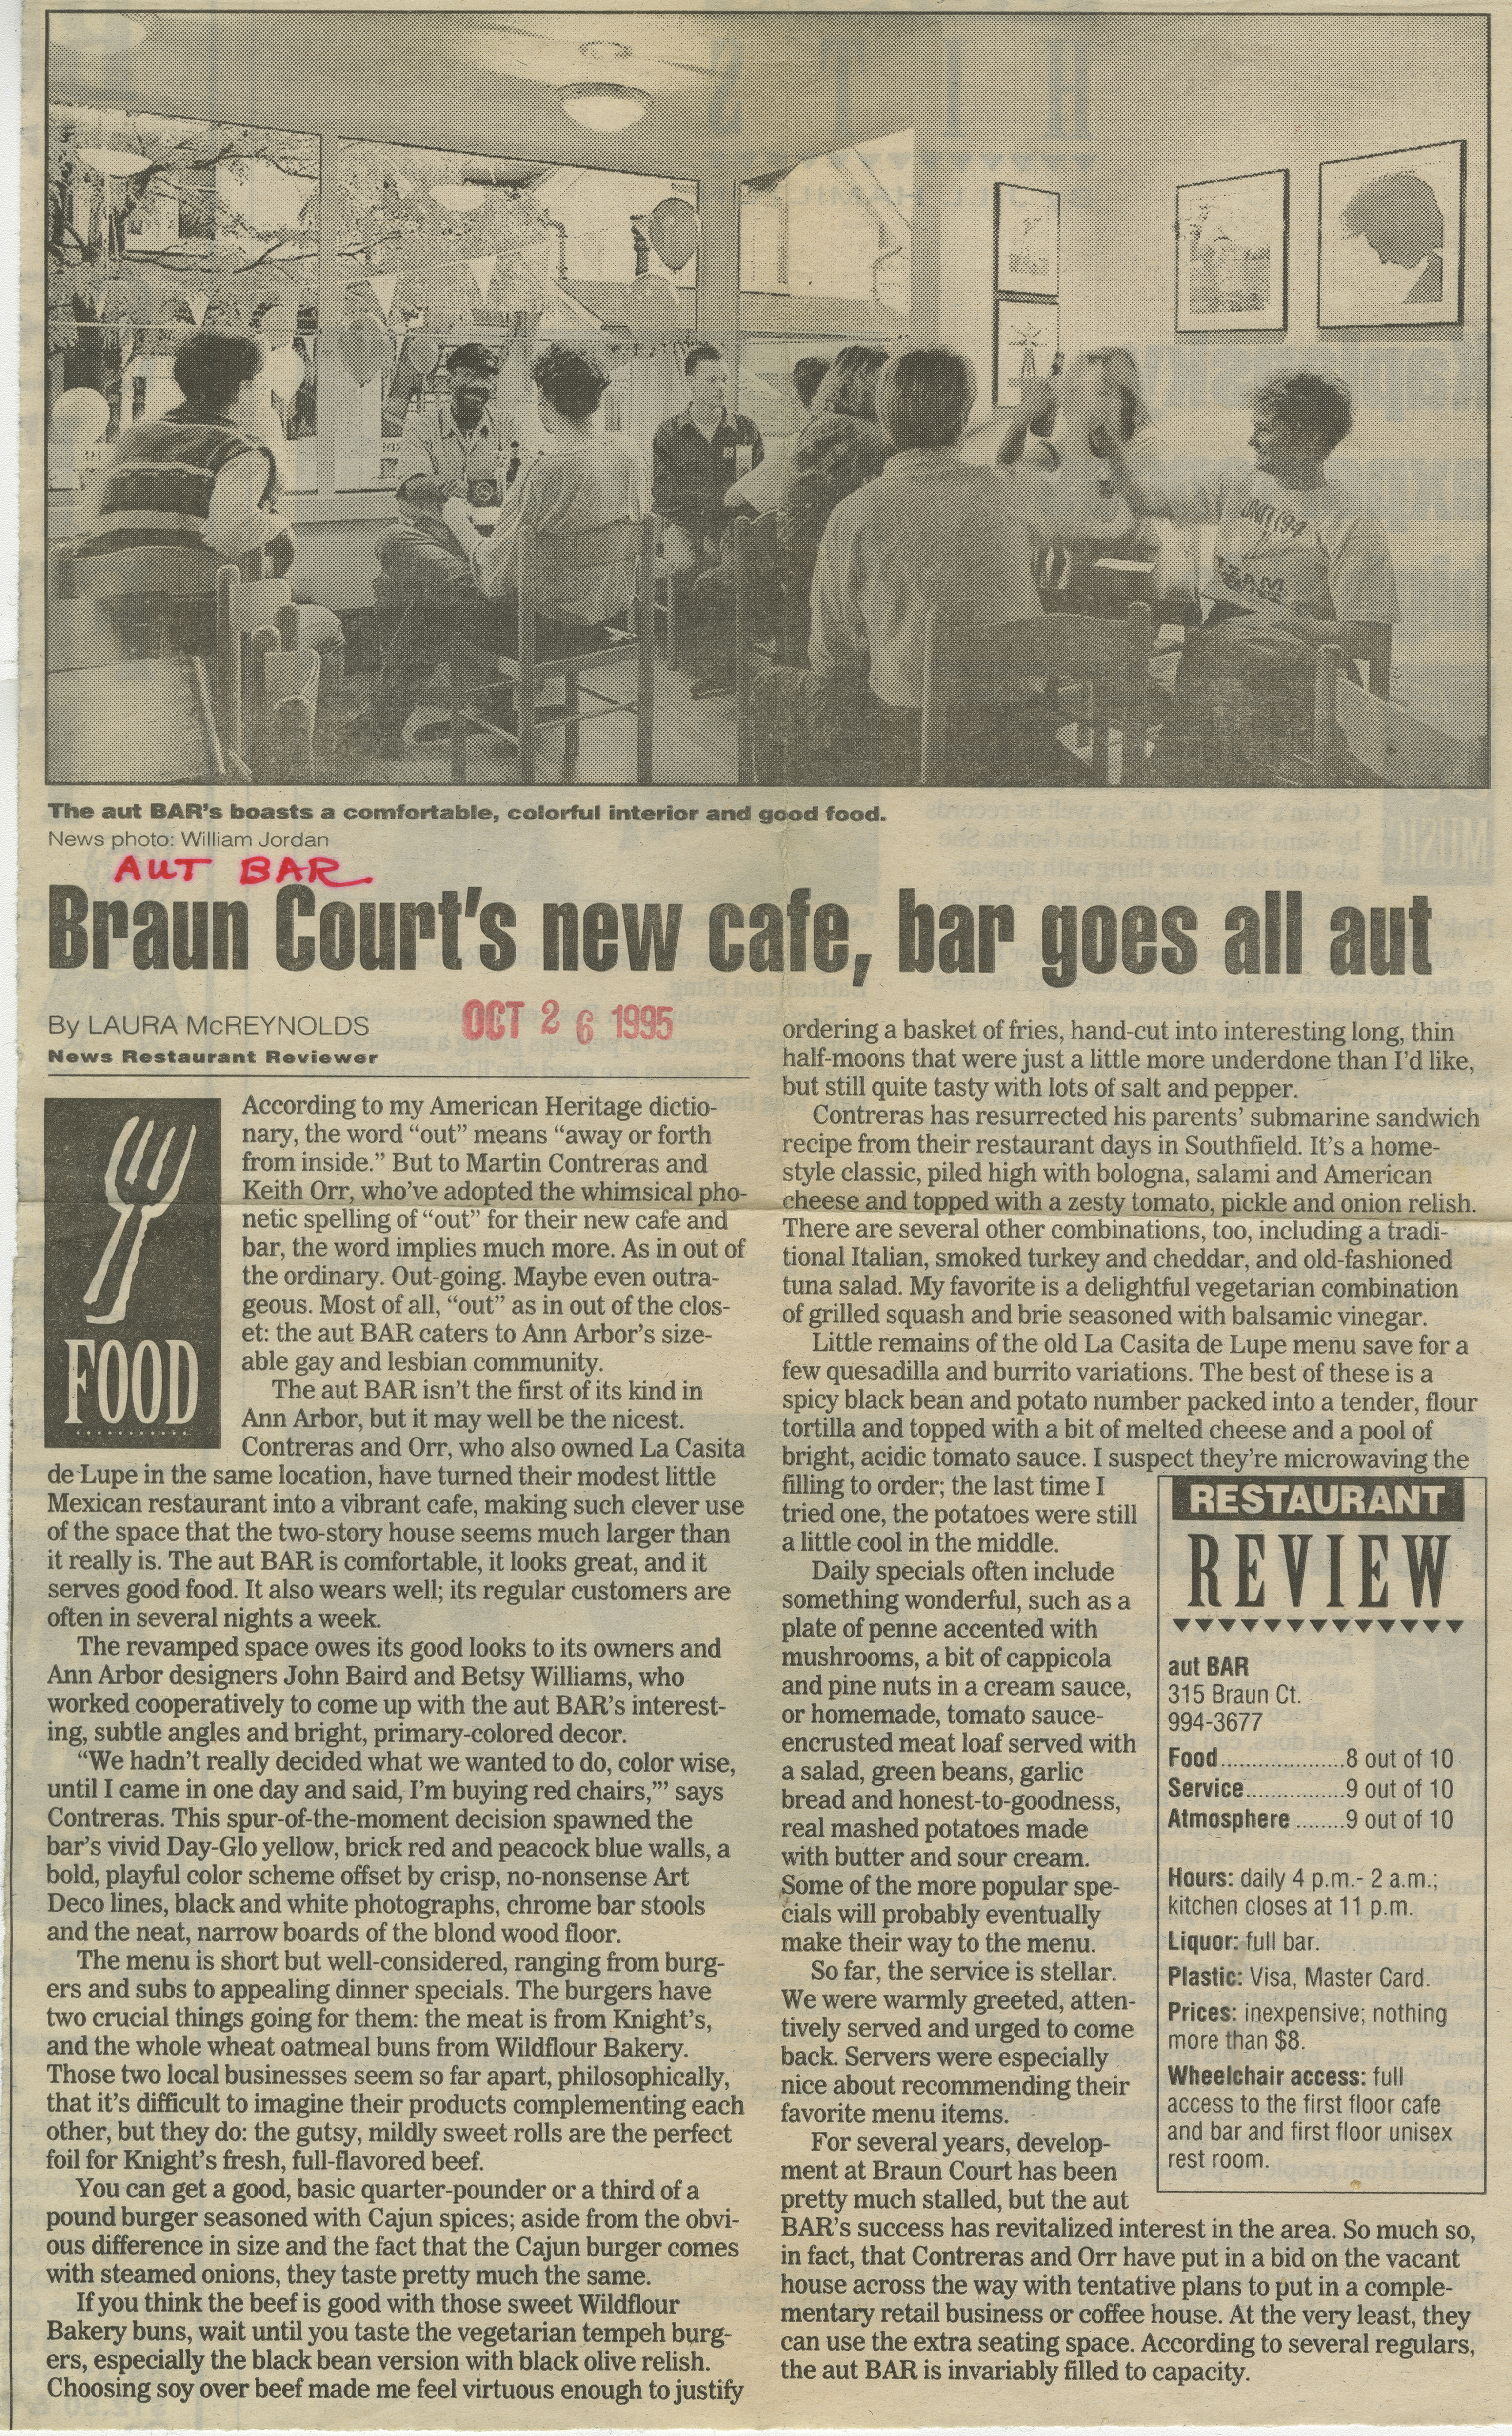 Braun Court's new cafe, bar goes all aut image